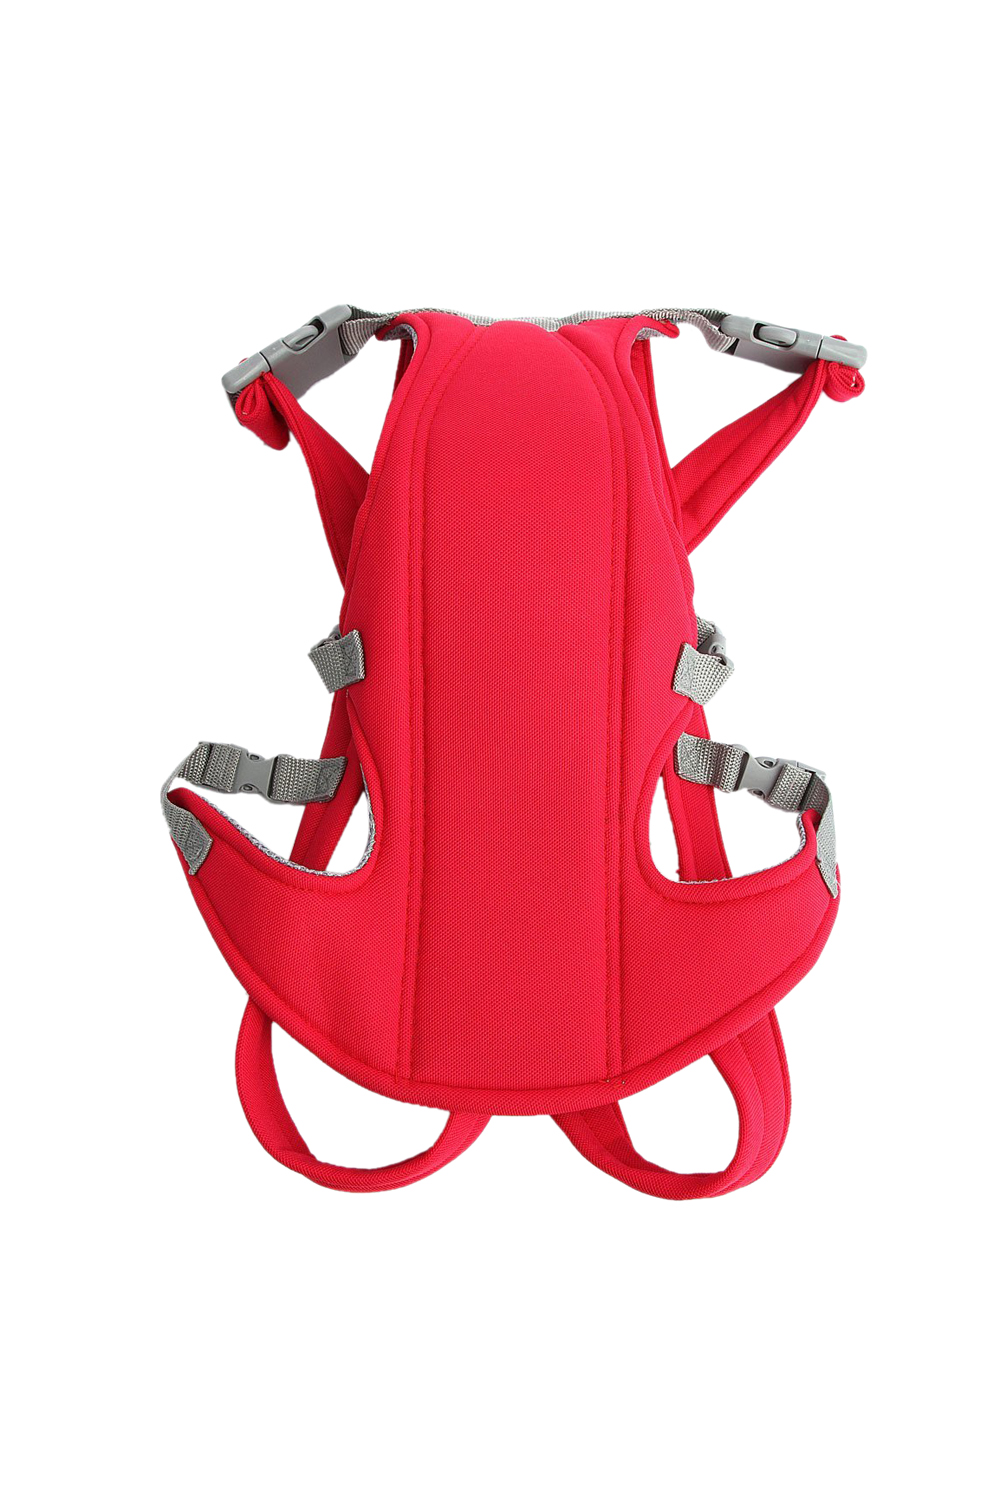 MACH Adjustable Infant Baby Carrier Newborn Kid Sling Wrap Rider Backpack Red